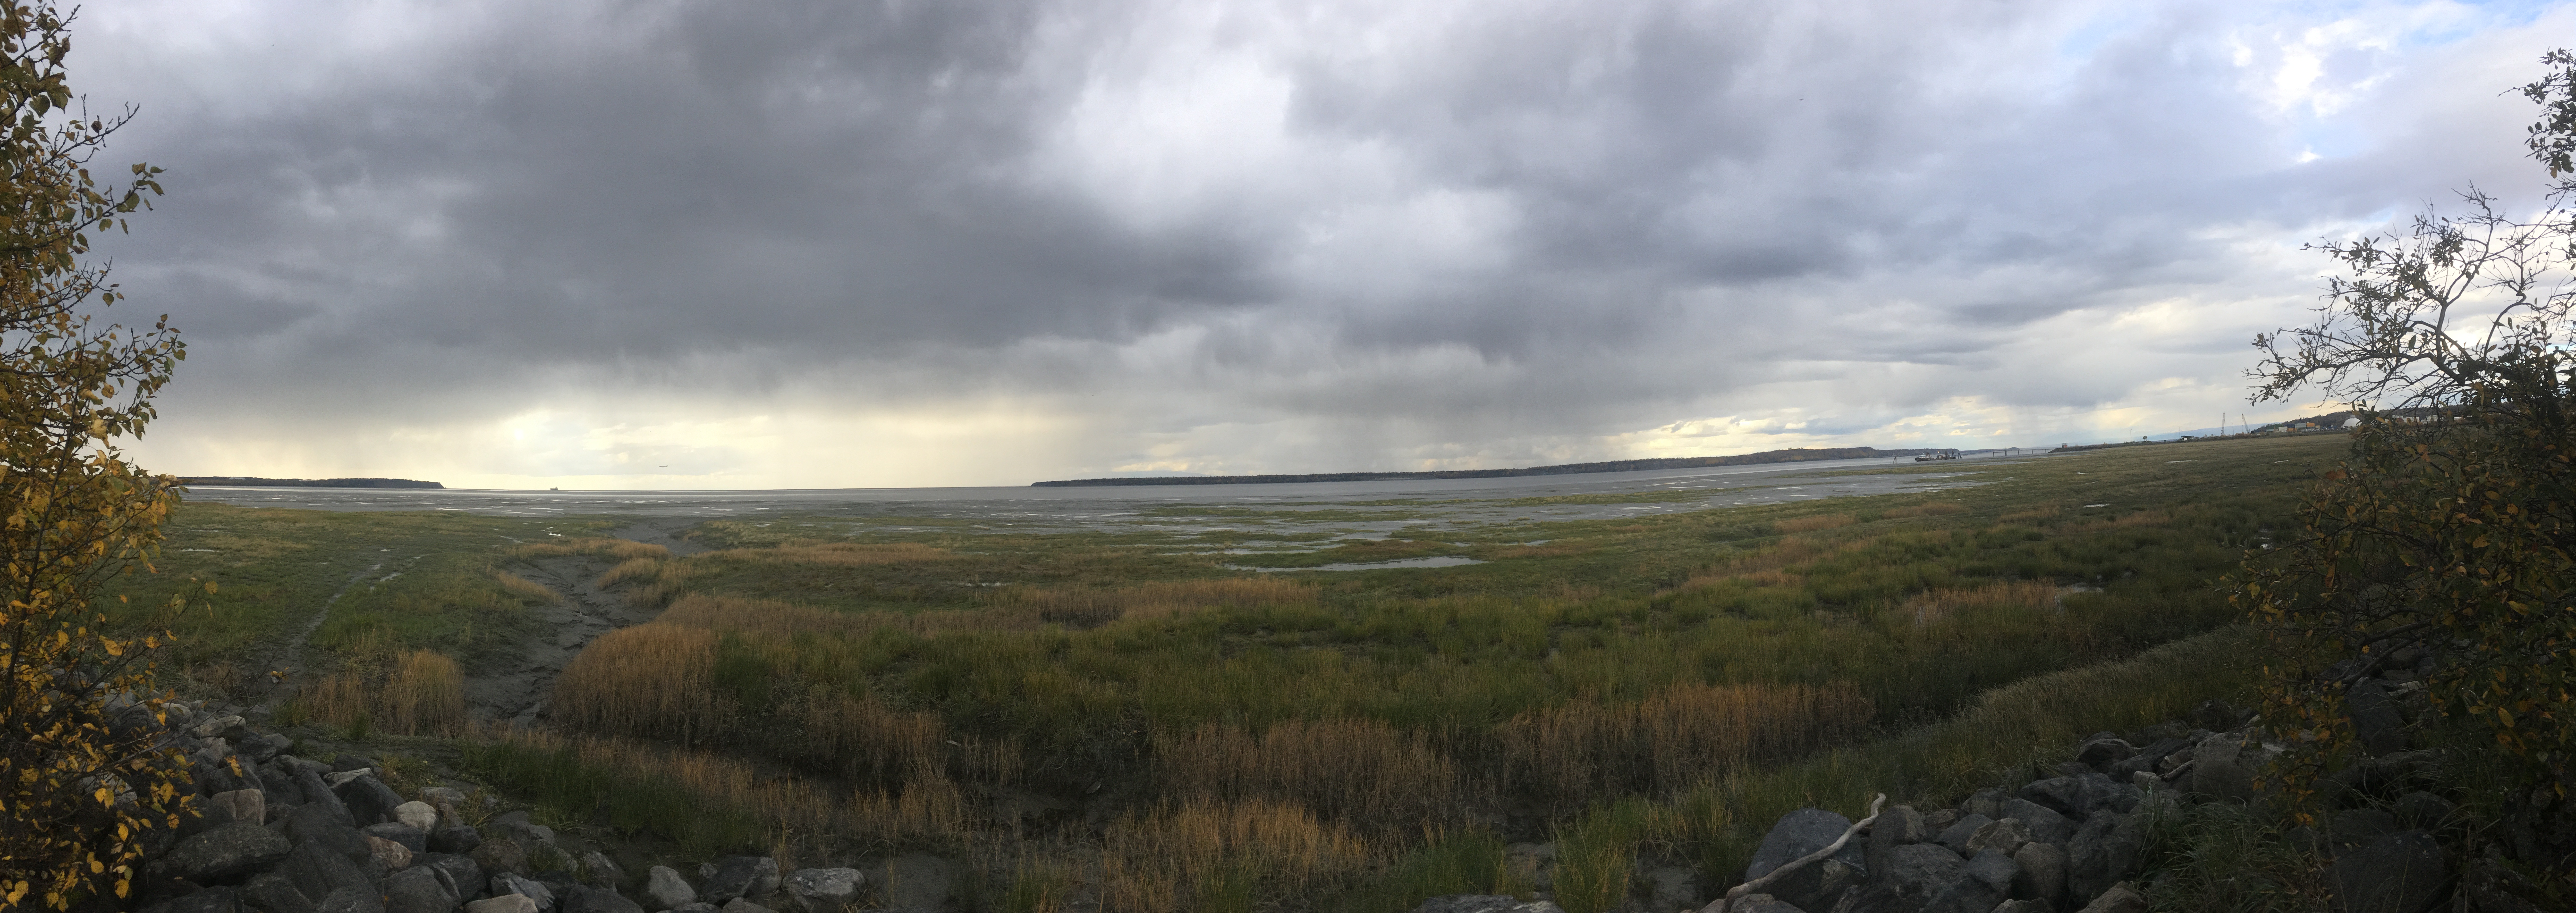 Knik Arm panorama